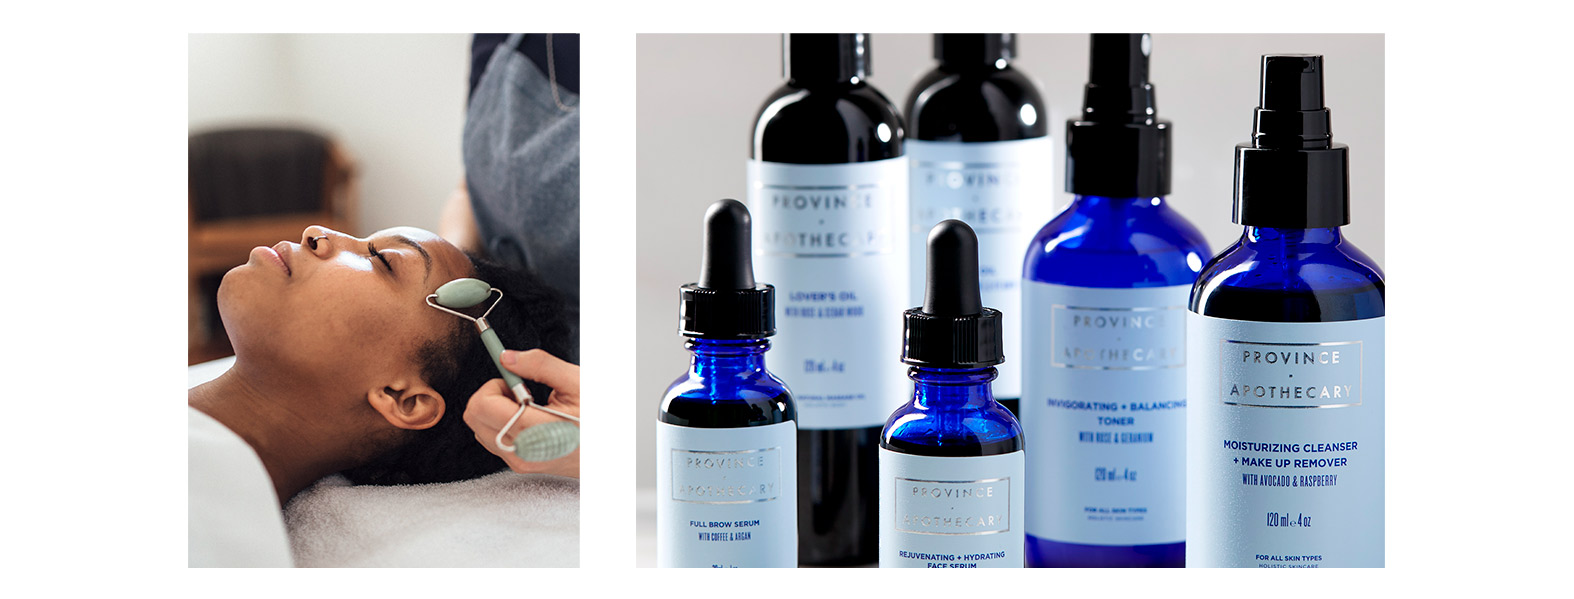 Province Apothecary - Rejuvenating and hydrating serum